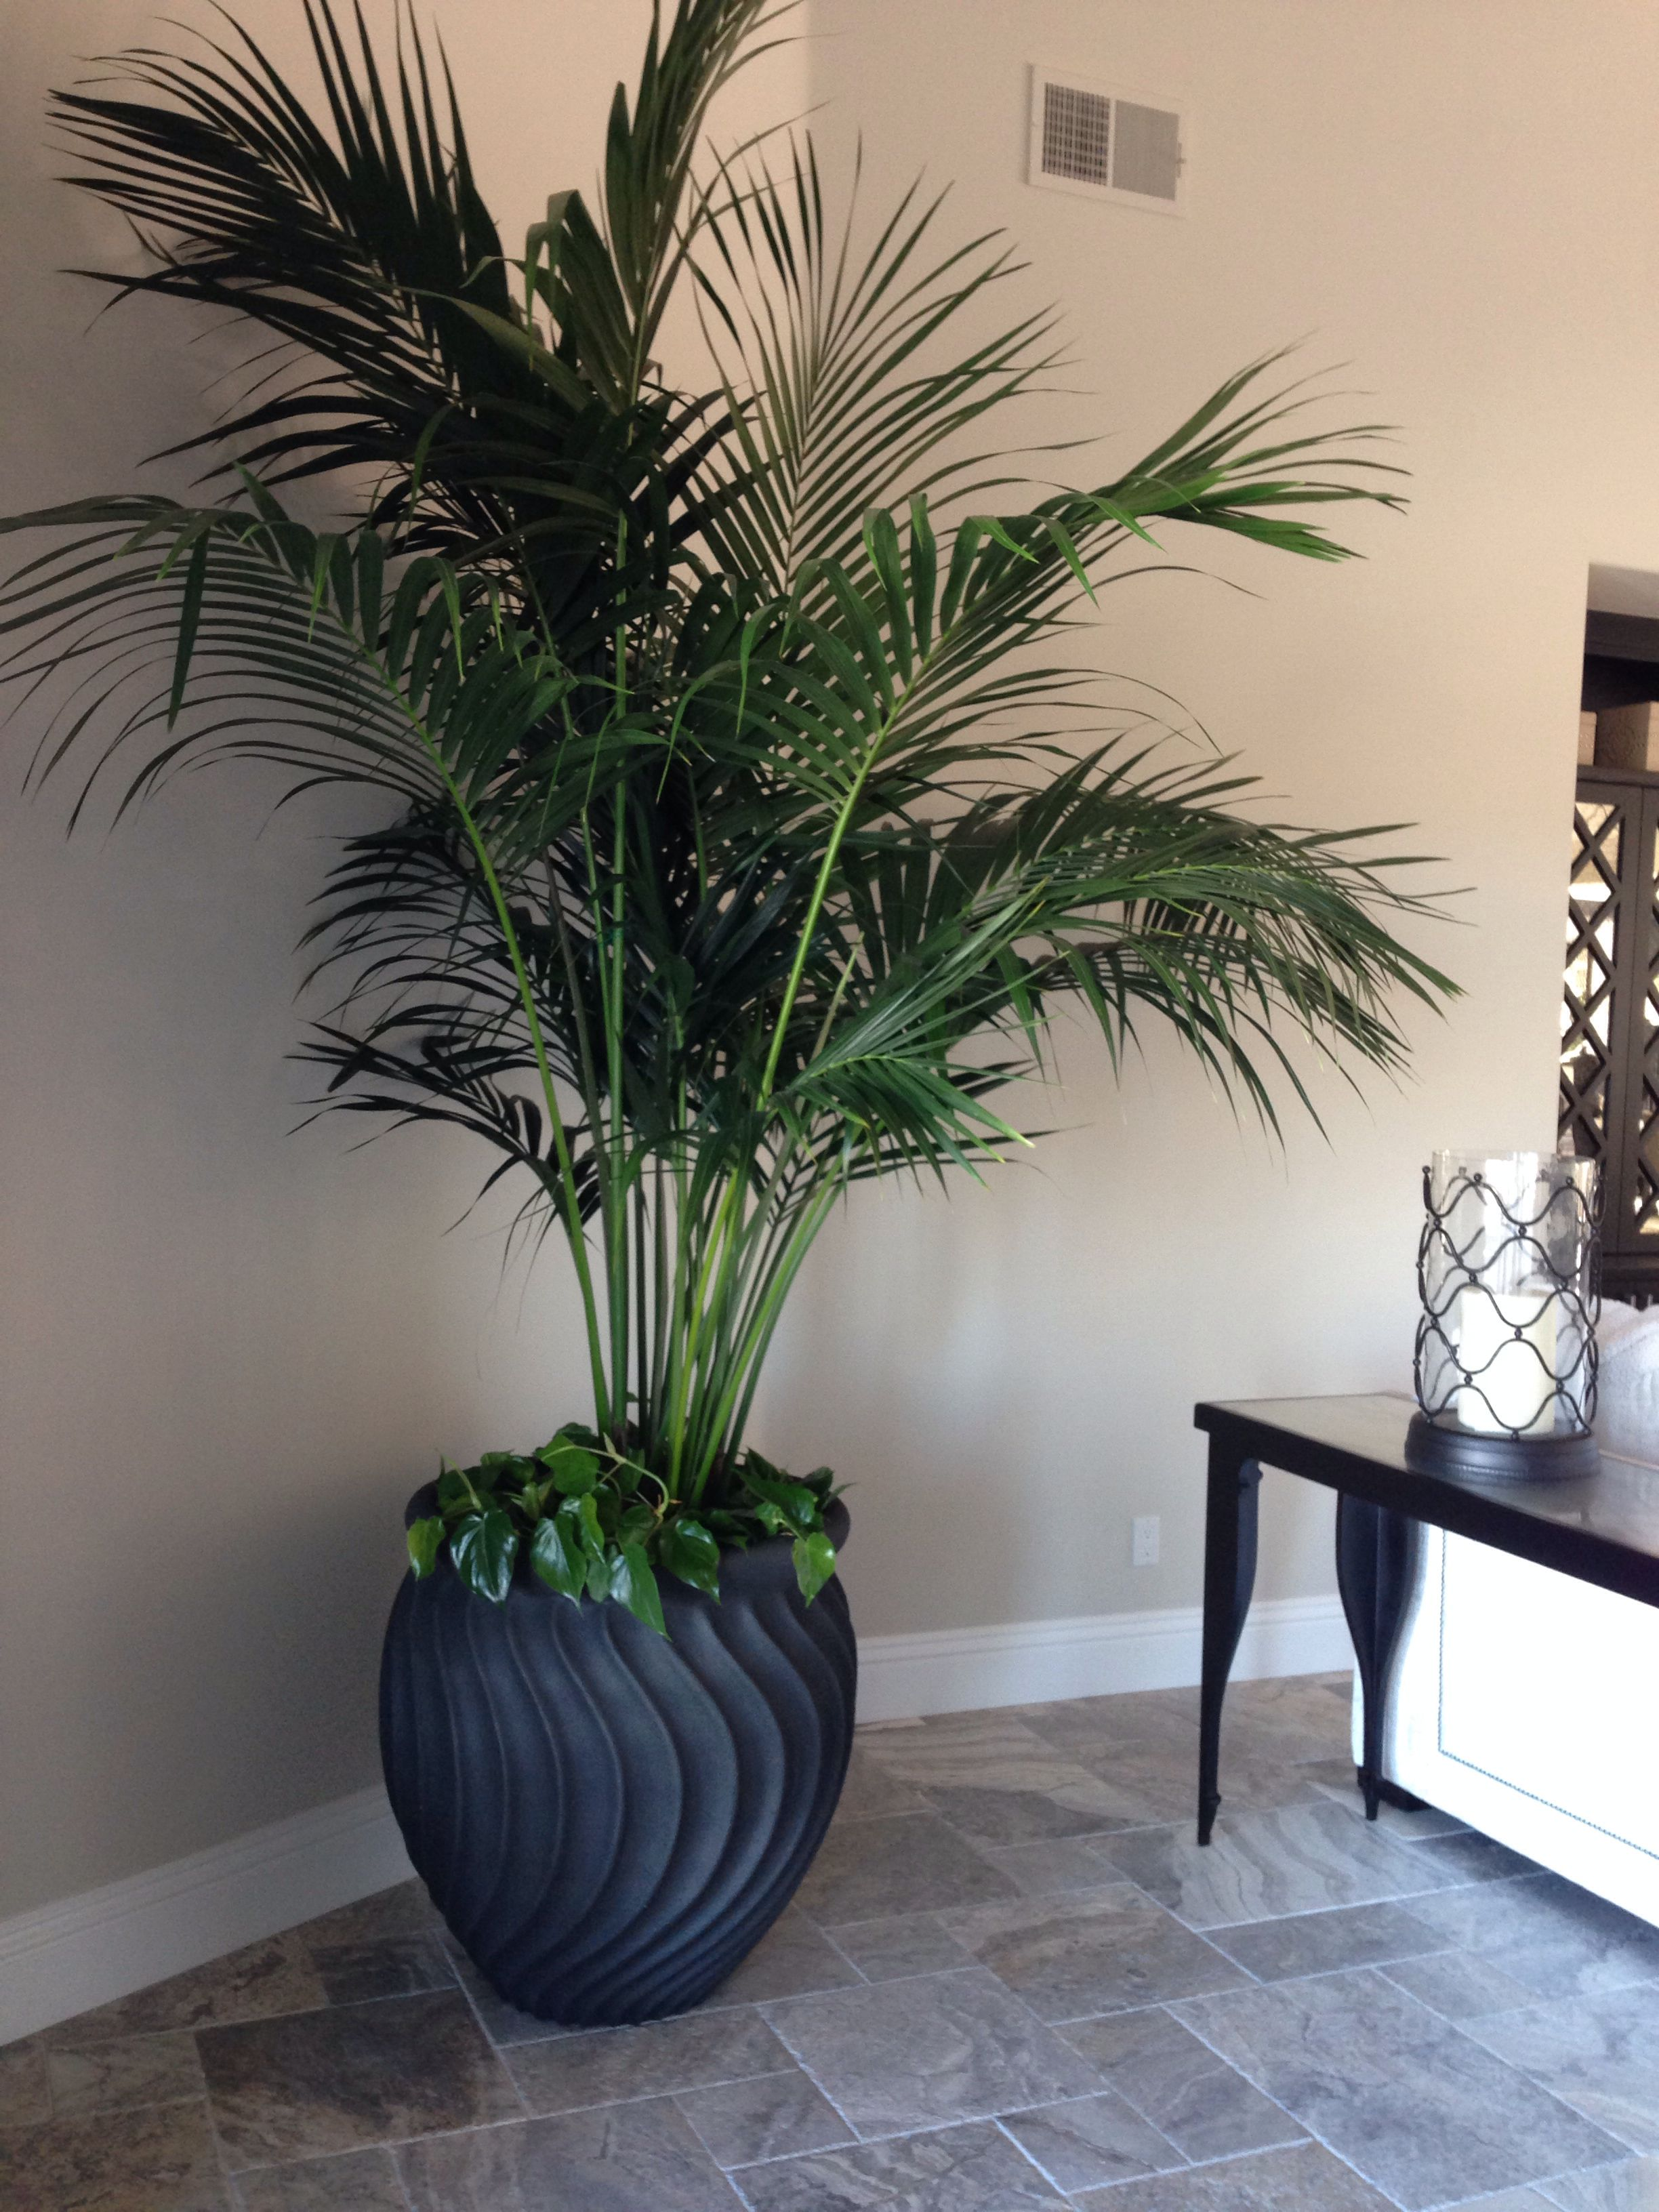 Kentia Palm In Perhaps A Old Tuscan Pot For The